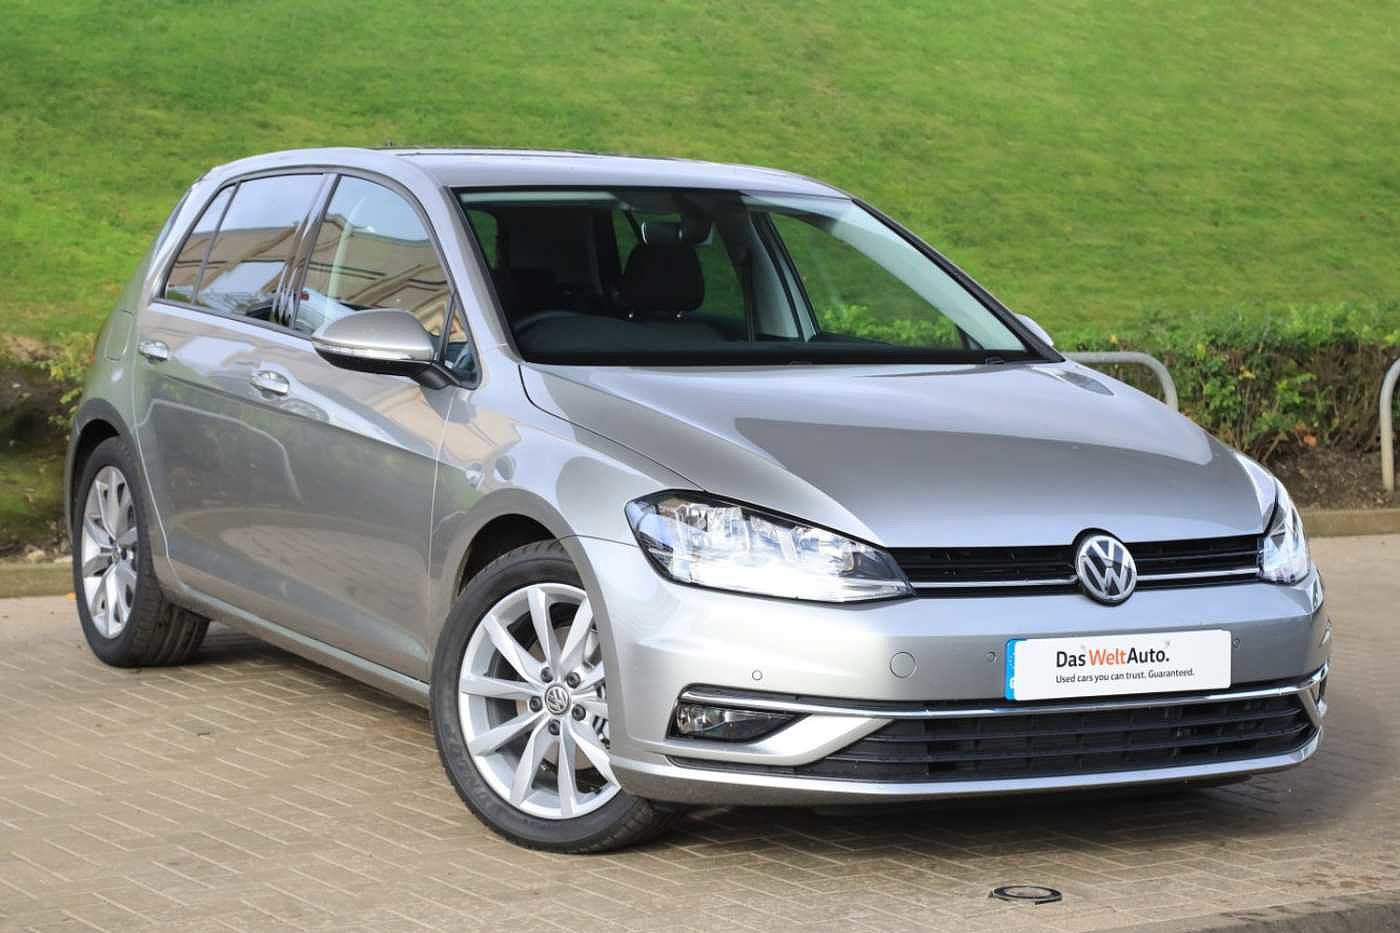 2019 Golf Diesel Hatchback 2.0 TDI GT 5dr for Sale in Edinburgh